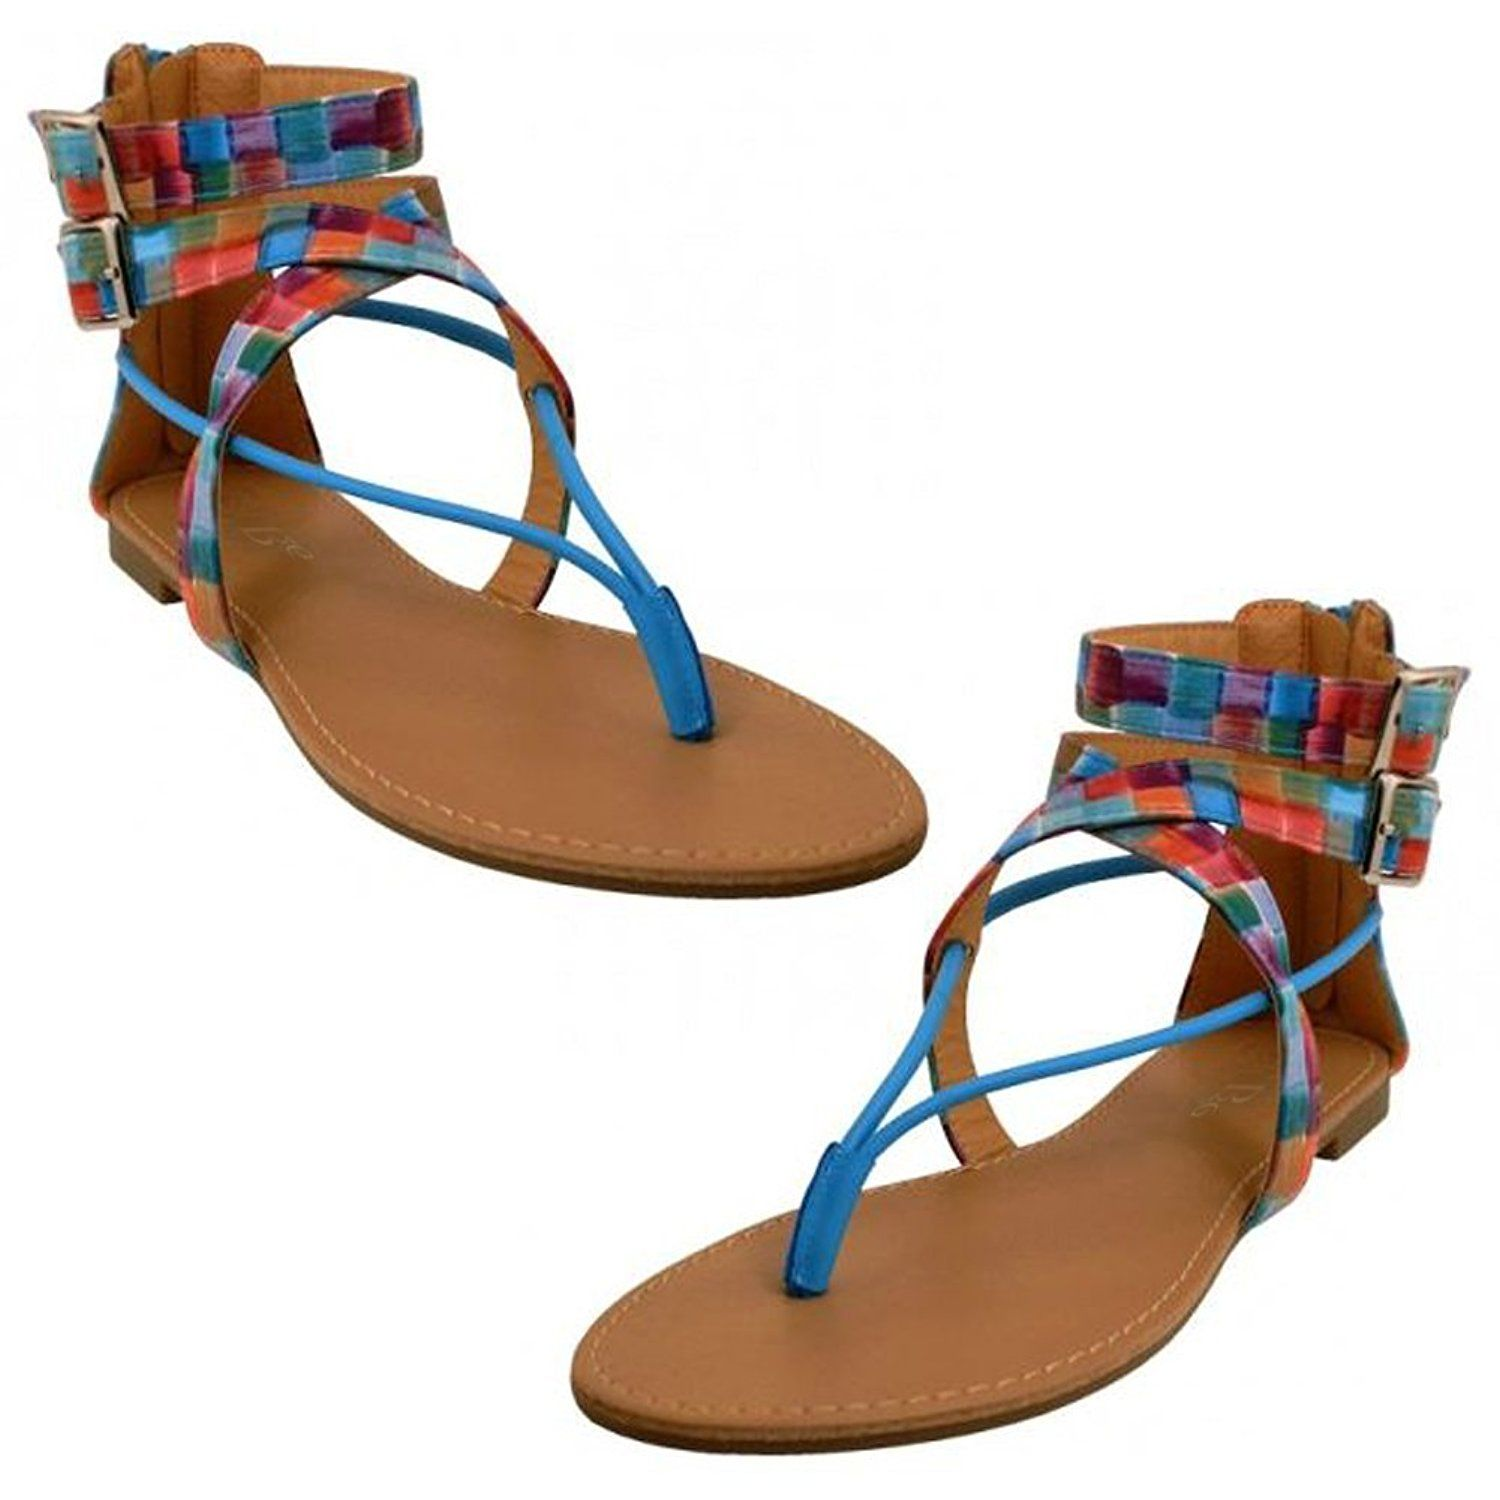 e44f07ceb669 P26 Womens Roman Gladiator Sandals Flats Thongs Shoes   Learn more by  visiting the image link